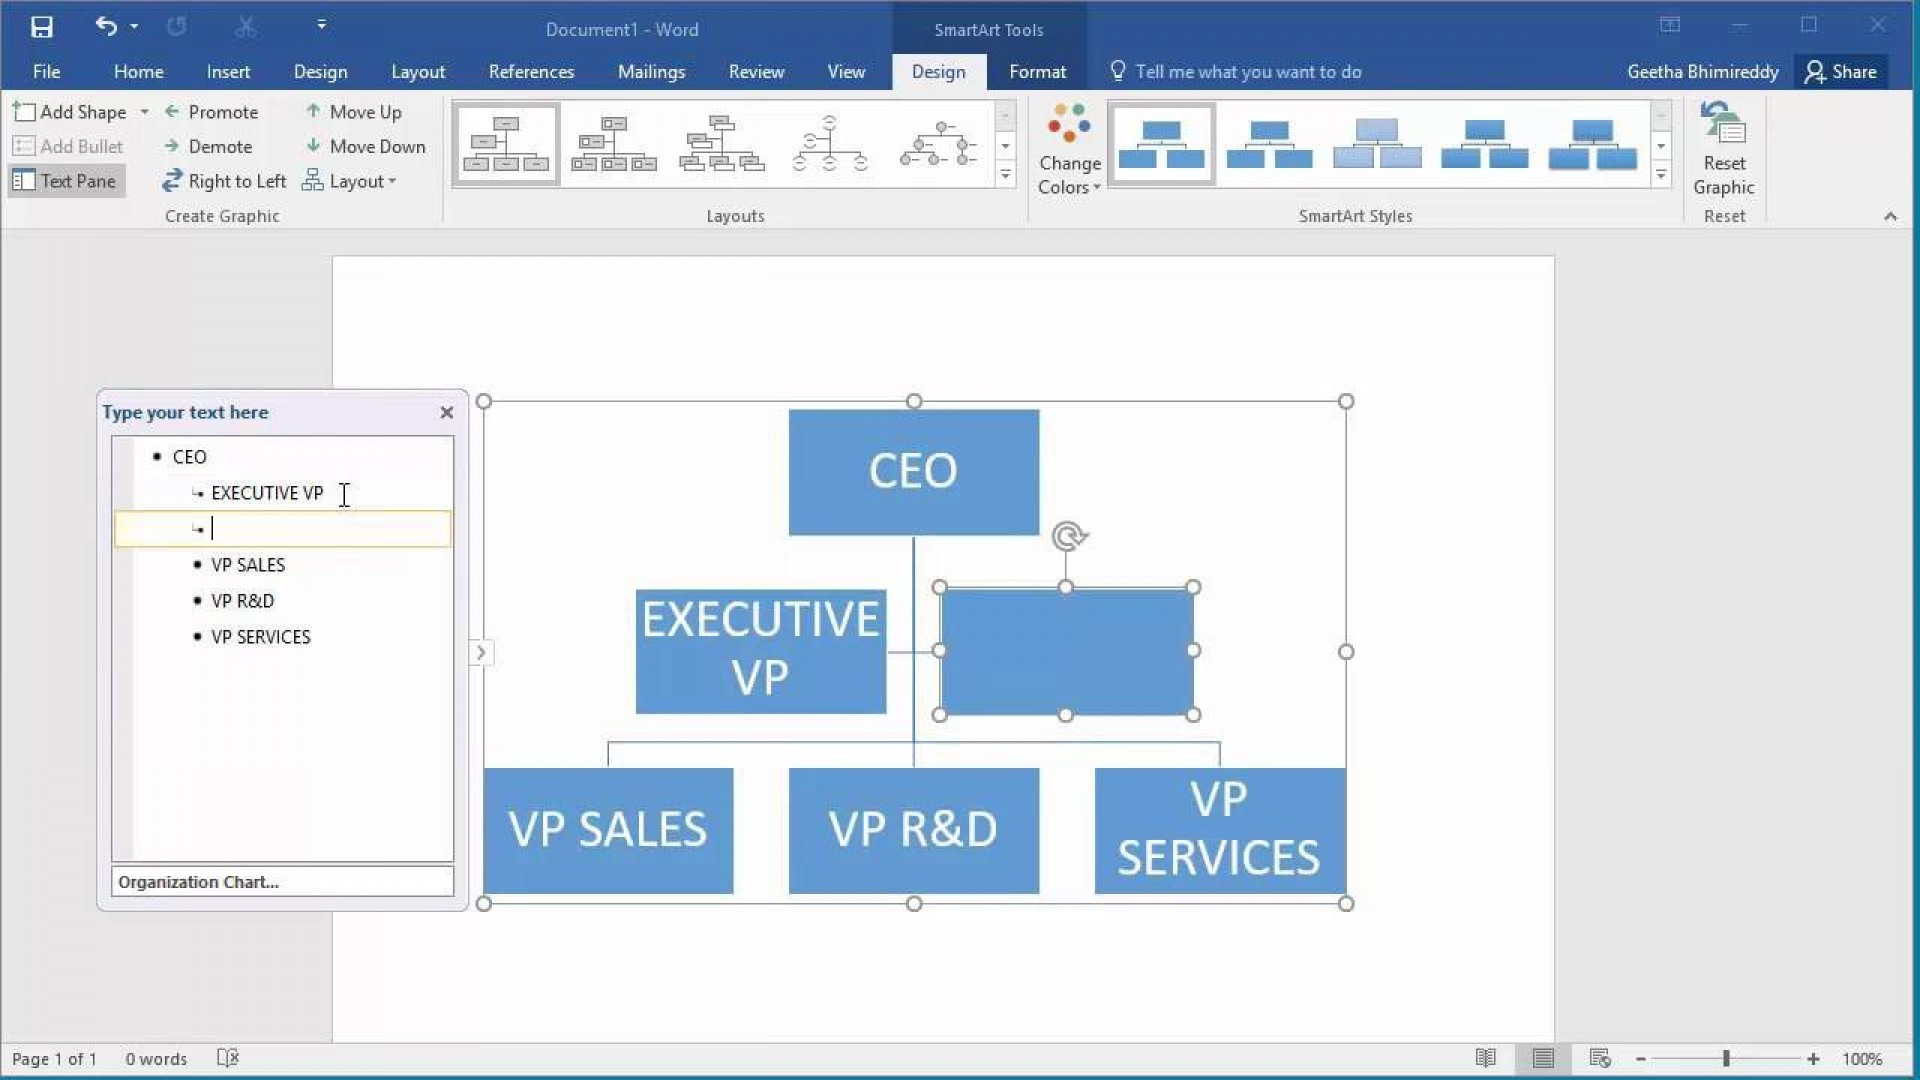 004 Exceptional Free Word Organisational Chart Template Highest Quality  Microsoft Organizational1920